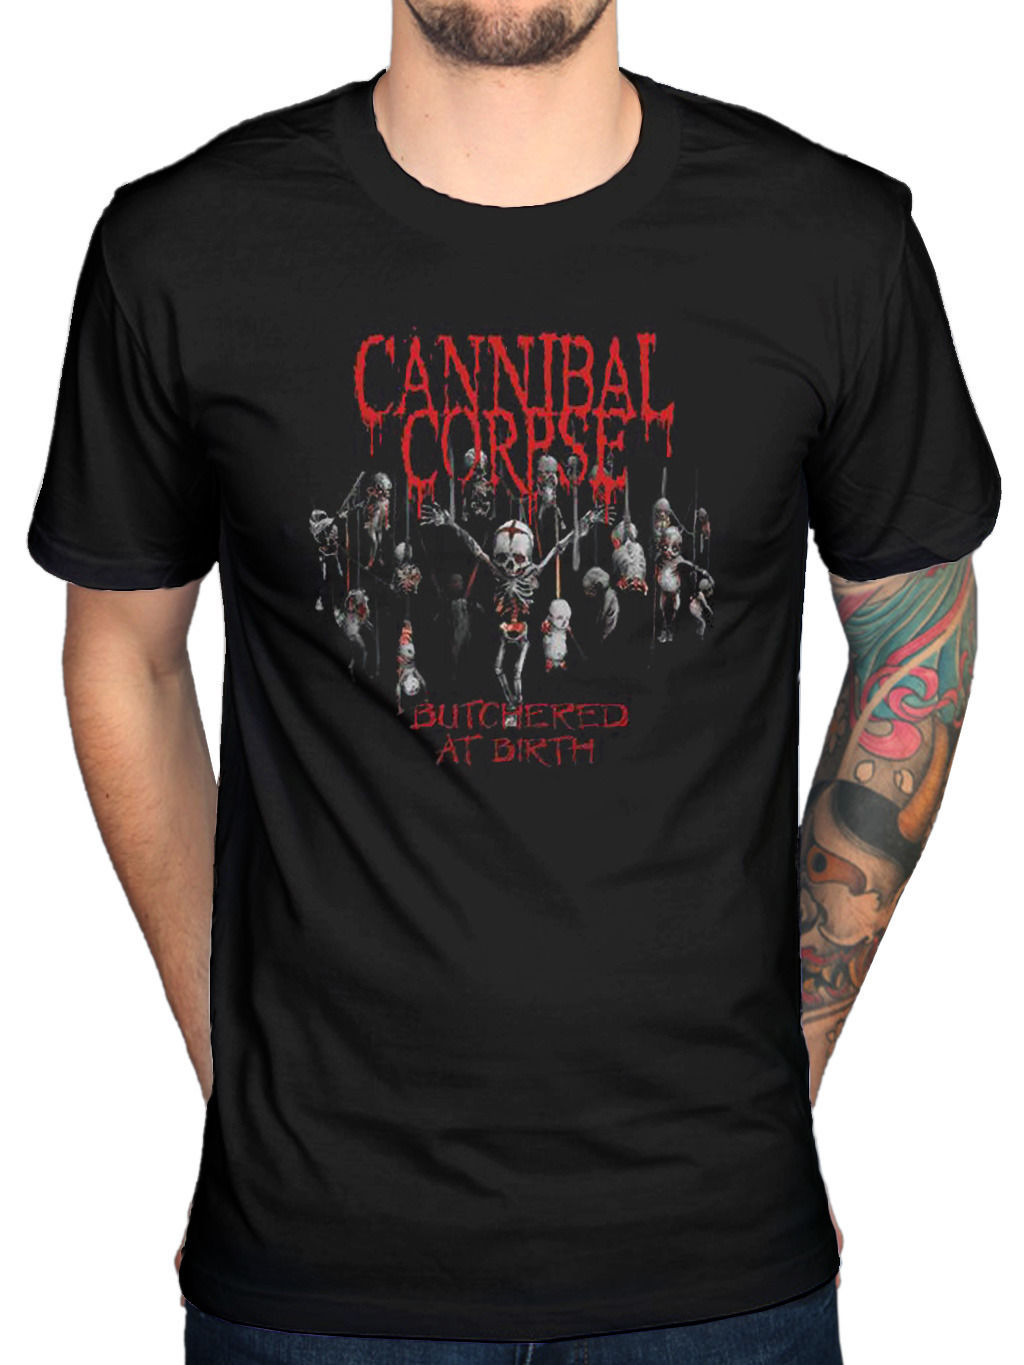 Cannibal Corpse Butchered at Birth 2015 T-Shirt Death Metal Merchandise